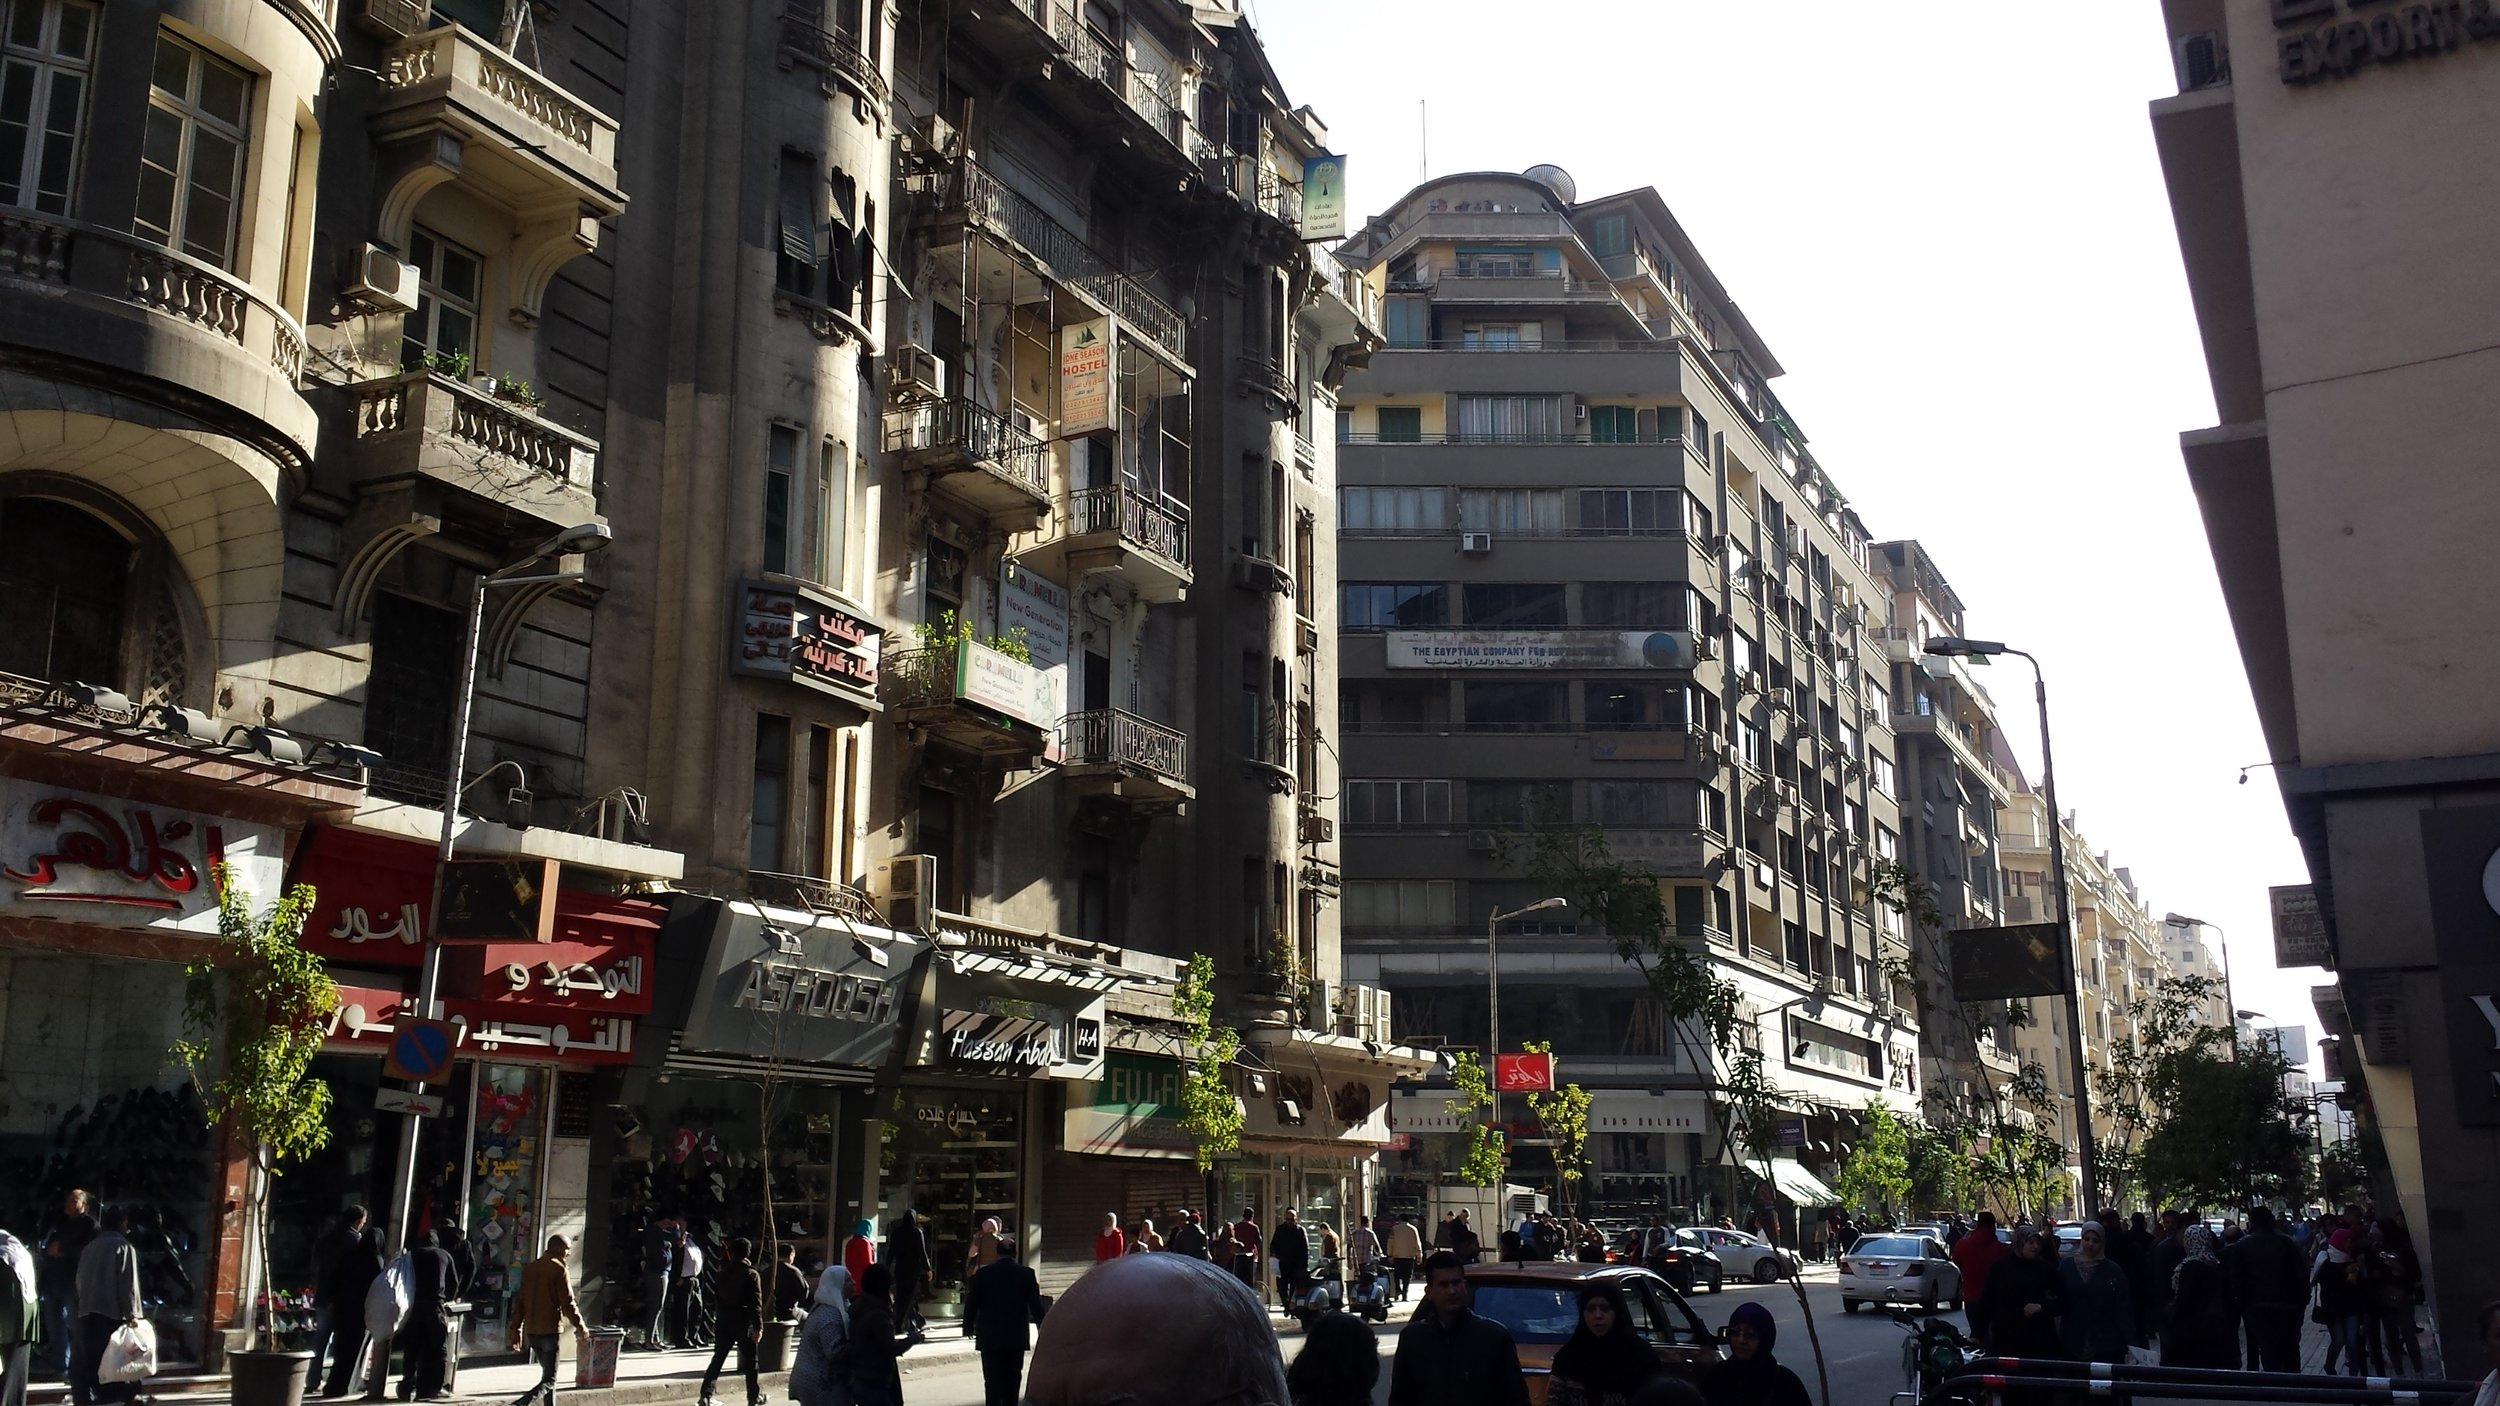 And then there are other streets in Cairo that don't have those vendors.